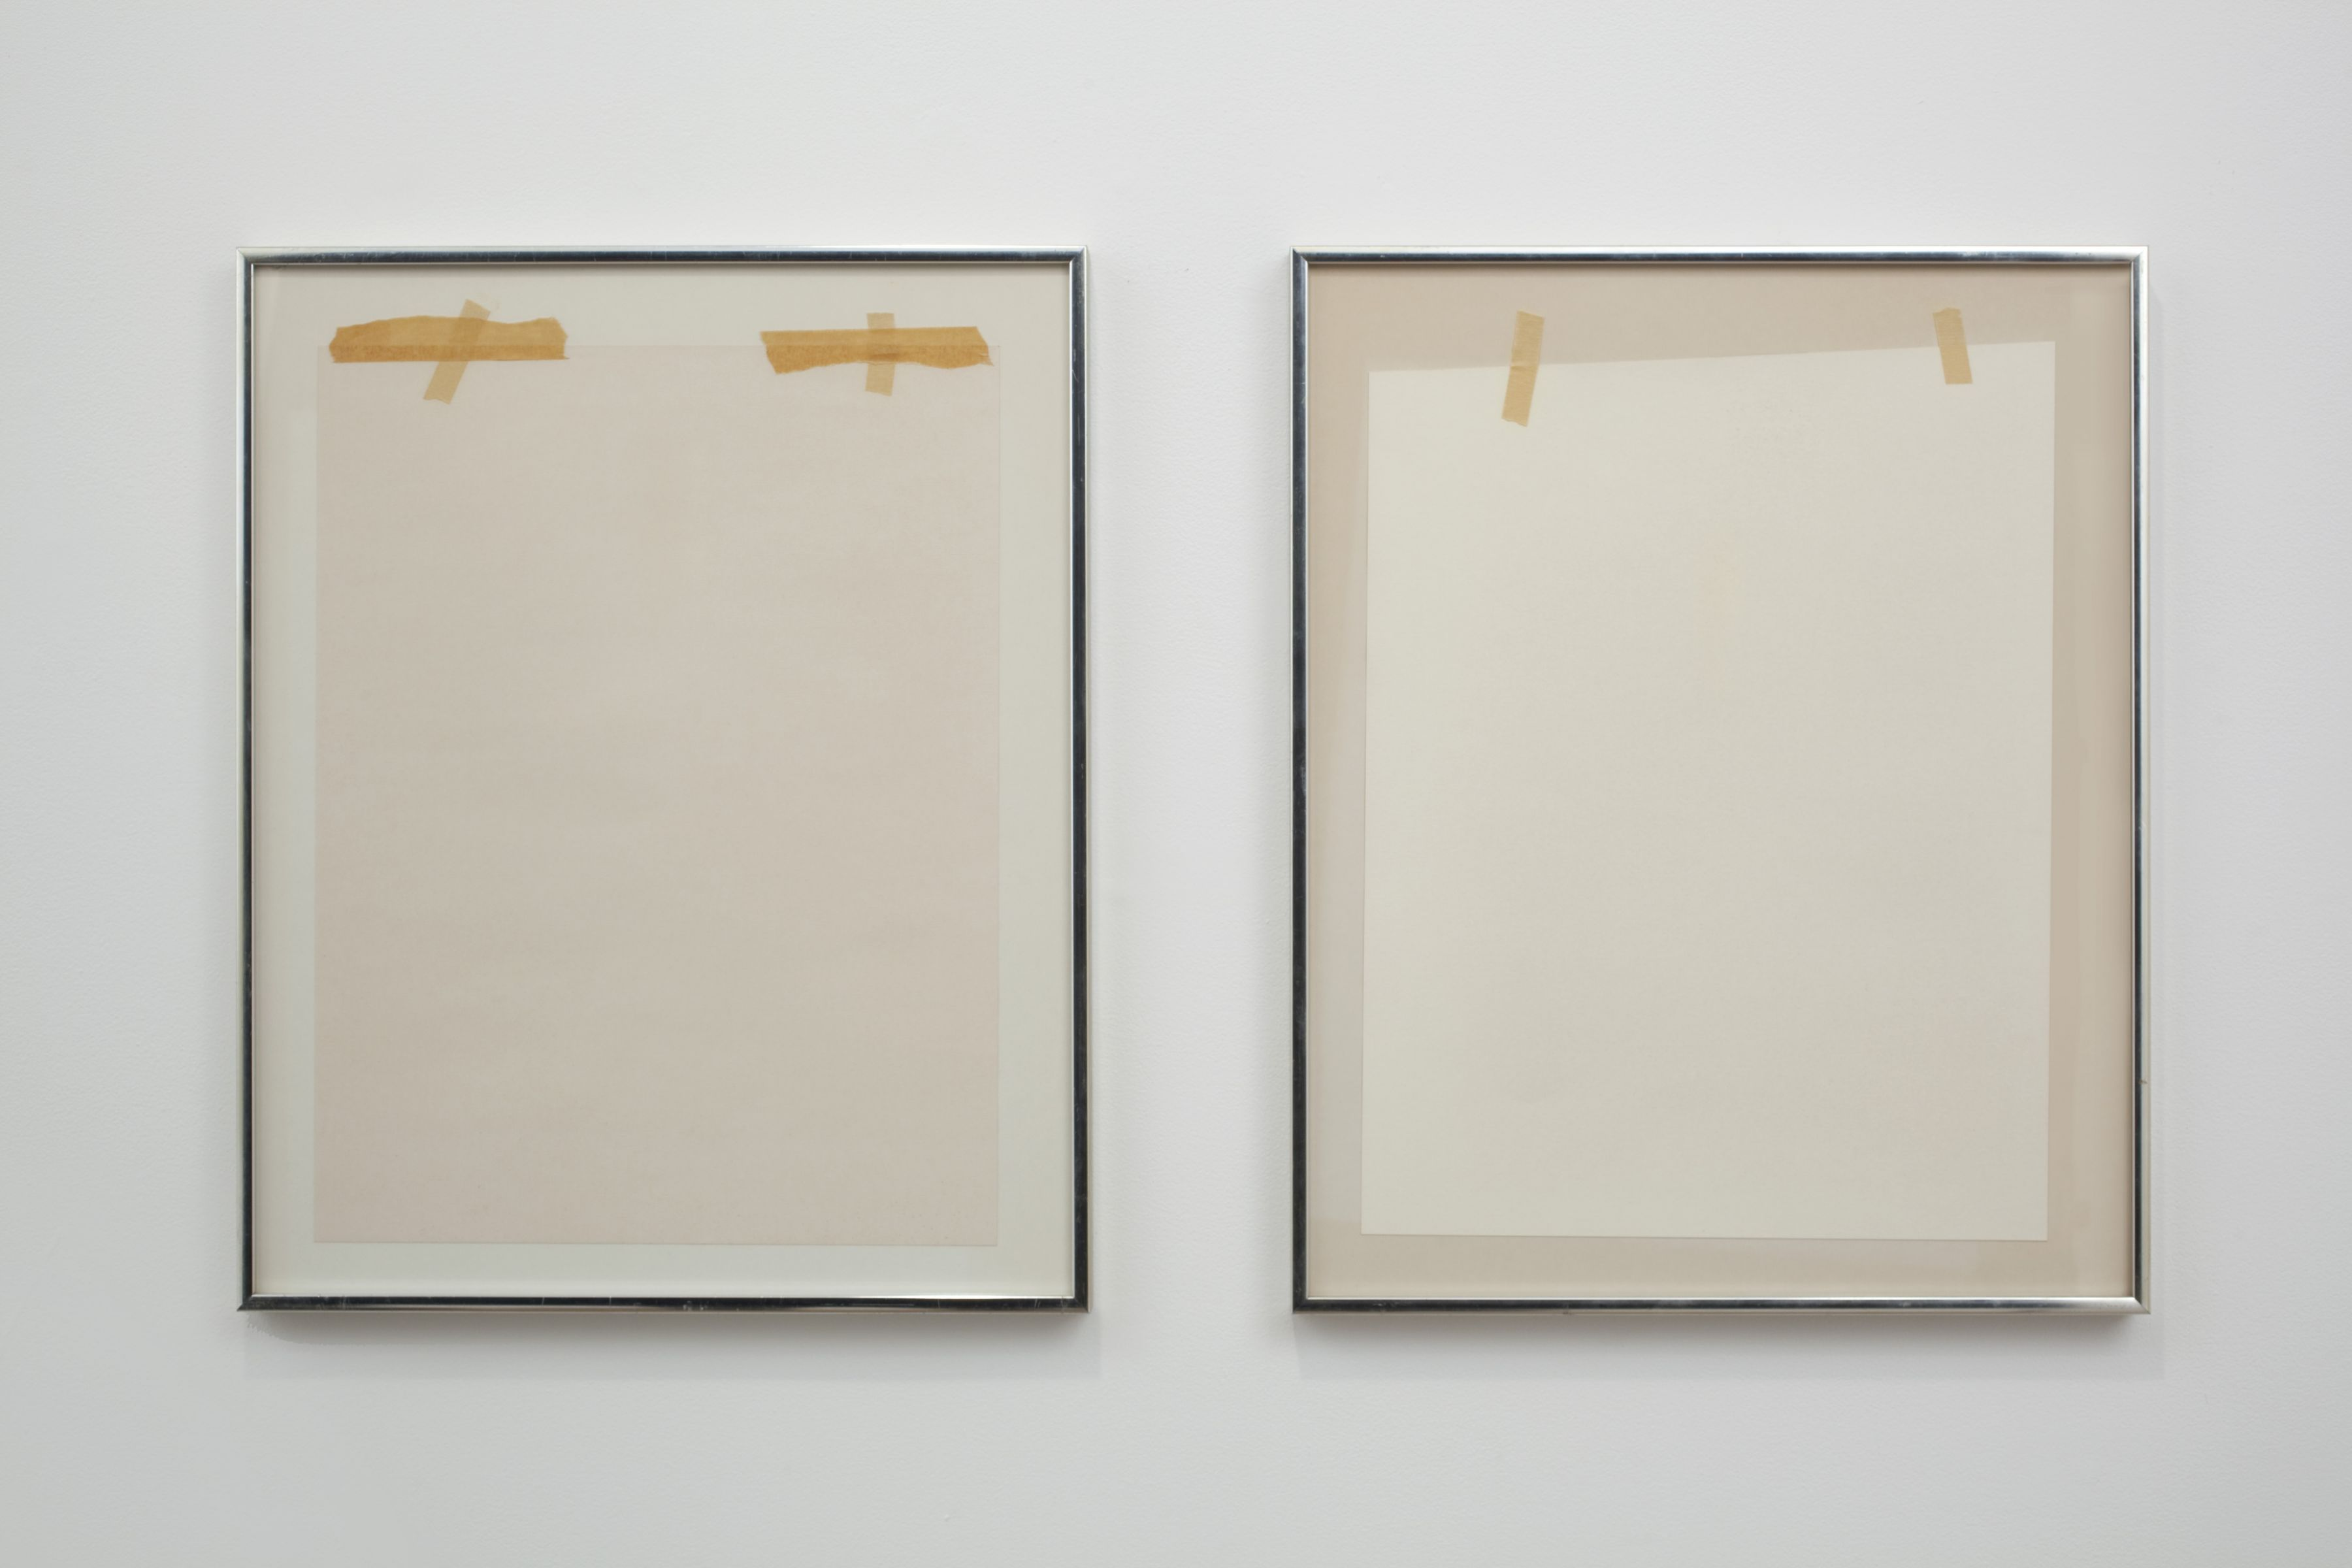 Gedi Sibony, The Fortunoff Girls, 2010, matted posters reversed in frame, 20 1/4 x 16 1/4 x 1 inches each